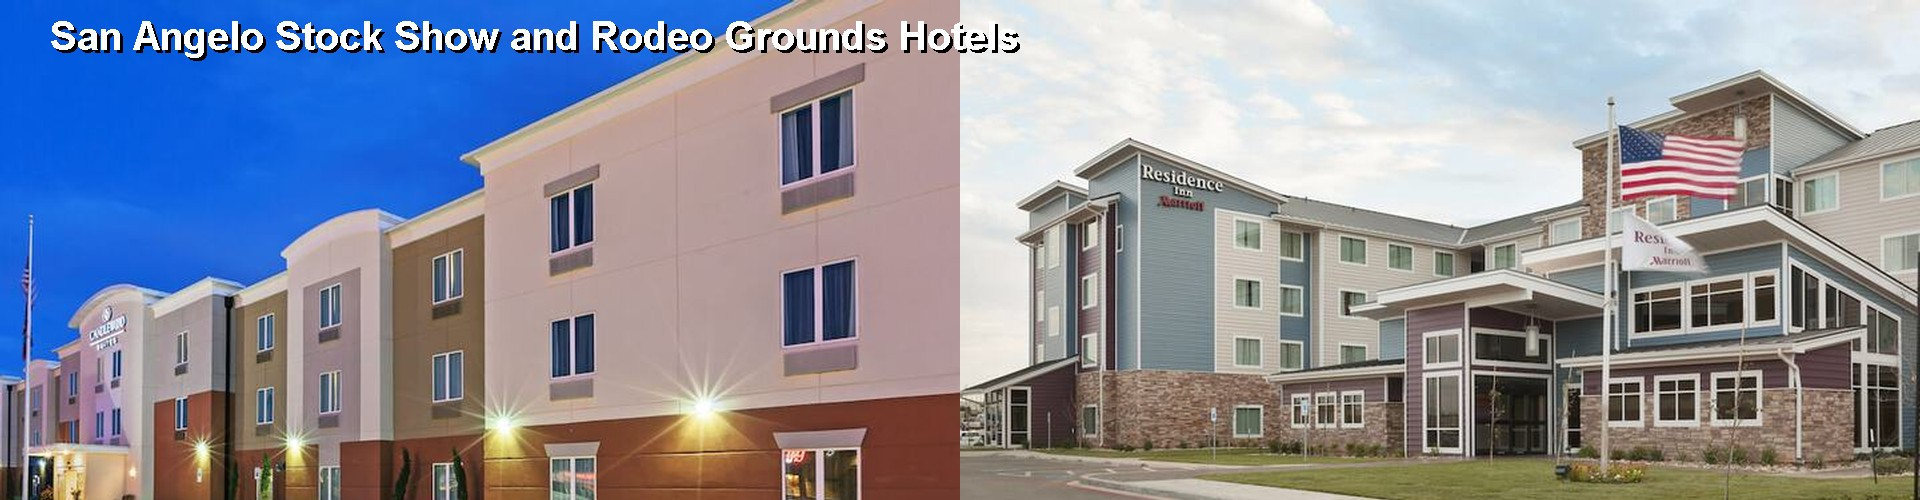 4 Best Hotels near San Angelo Stock Show and Rodeo Grounds